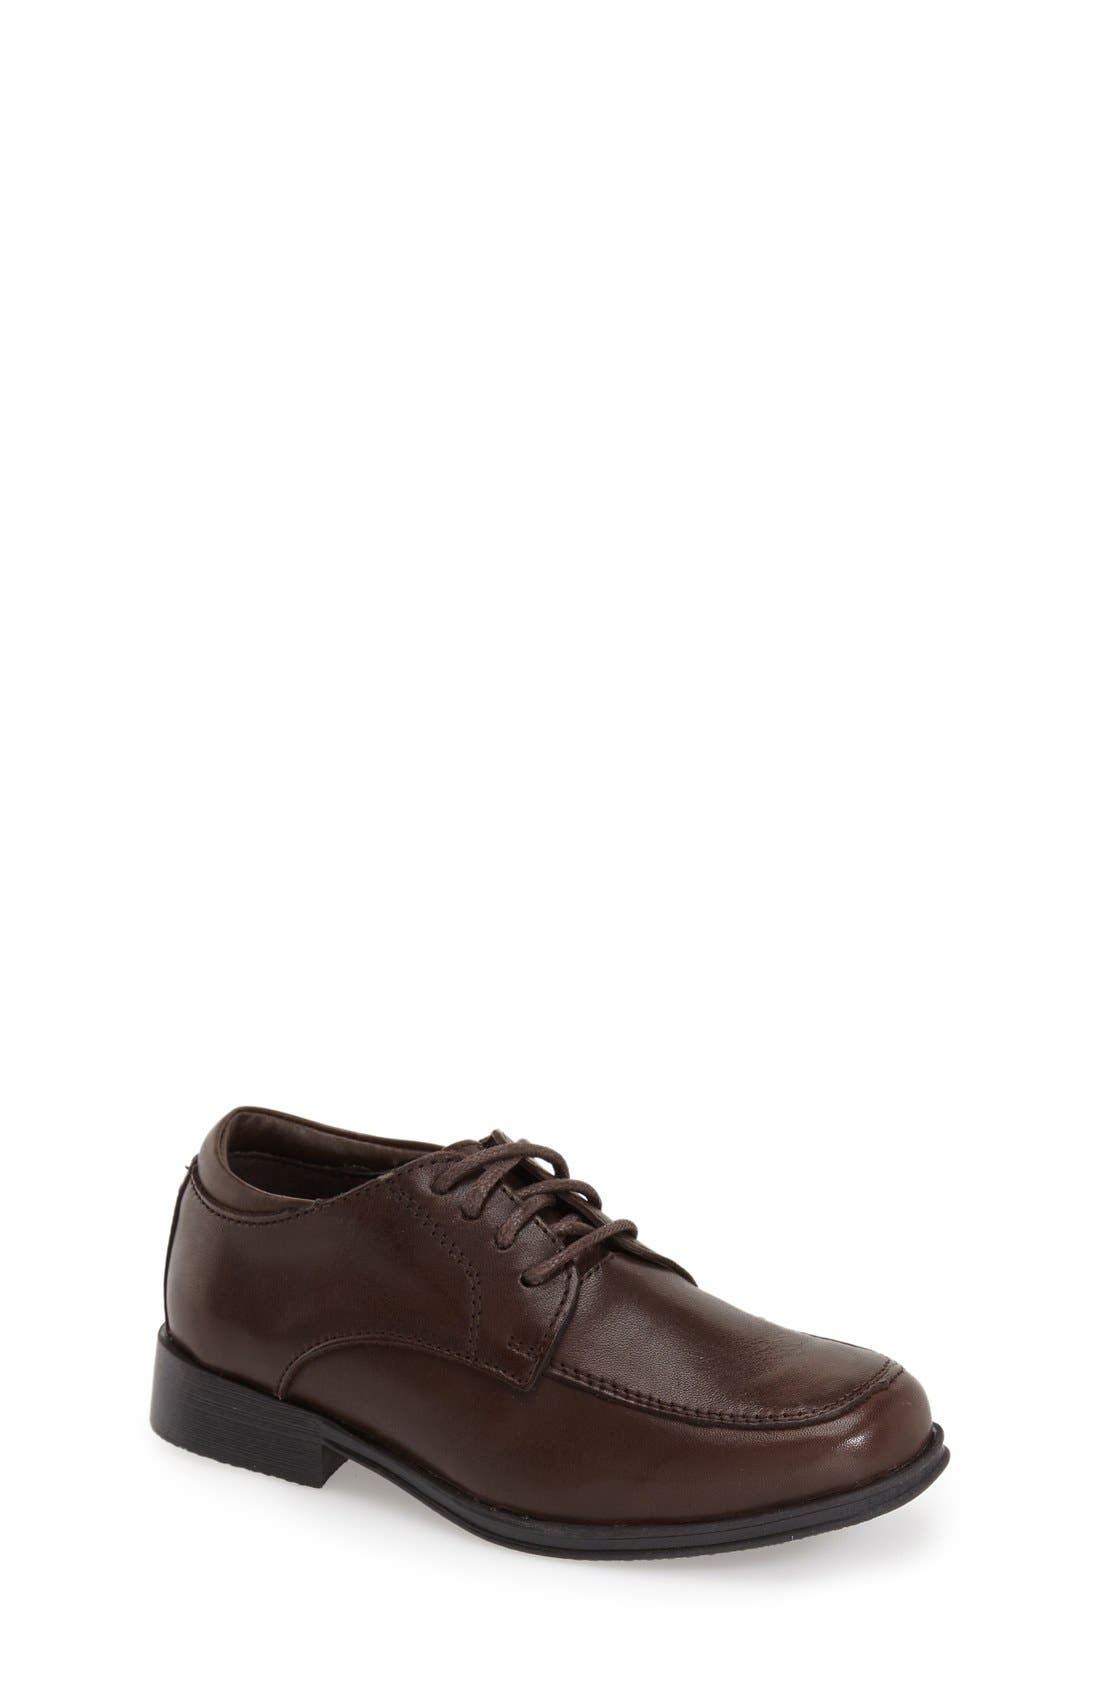 REACTION KENNETH COLE, Kid Club Loafer, Main thumbnail 1, color, DARK BROWN